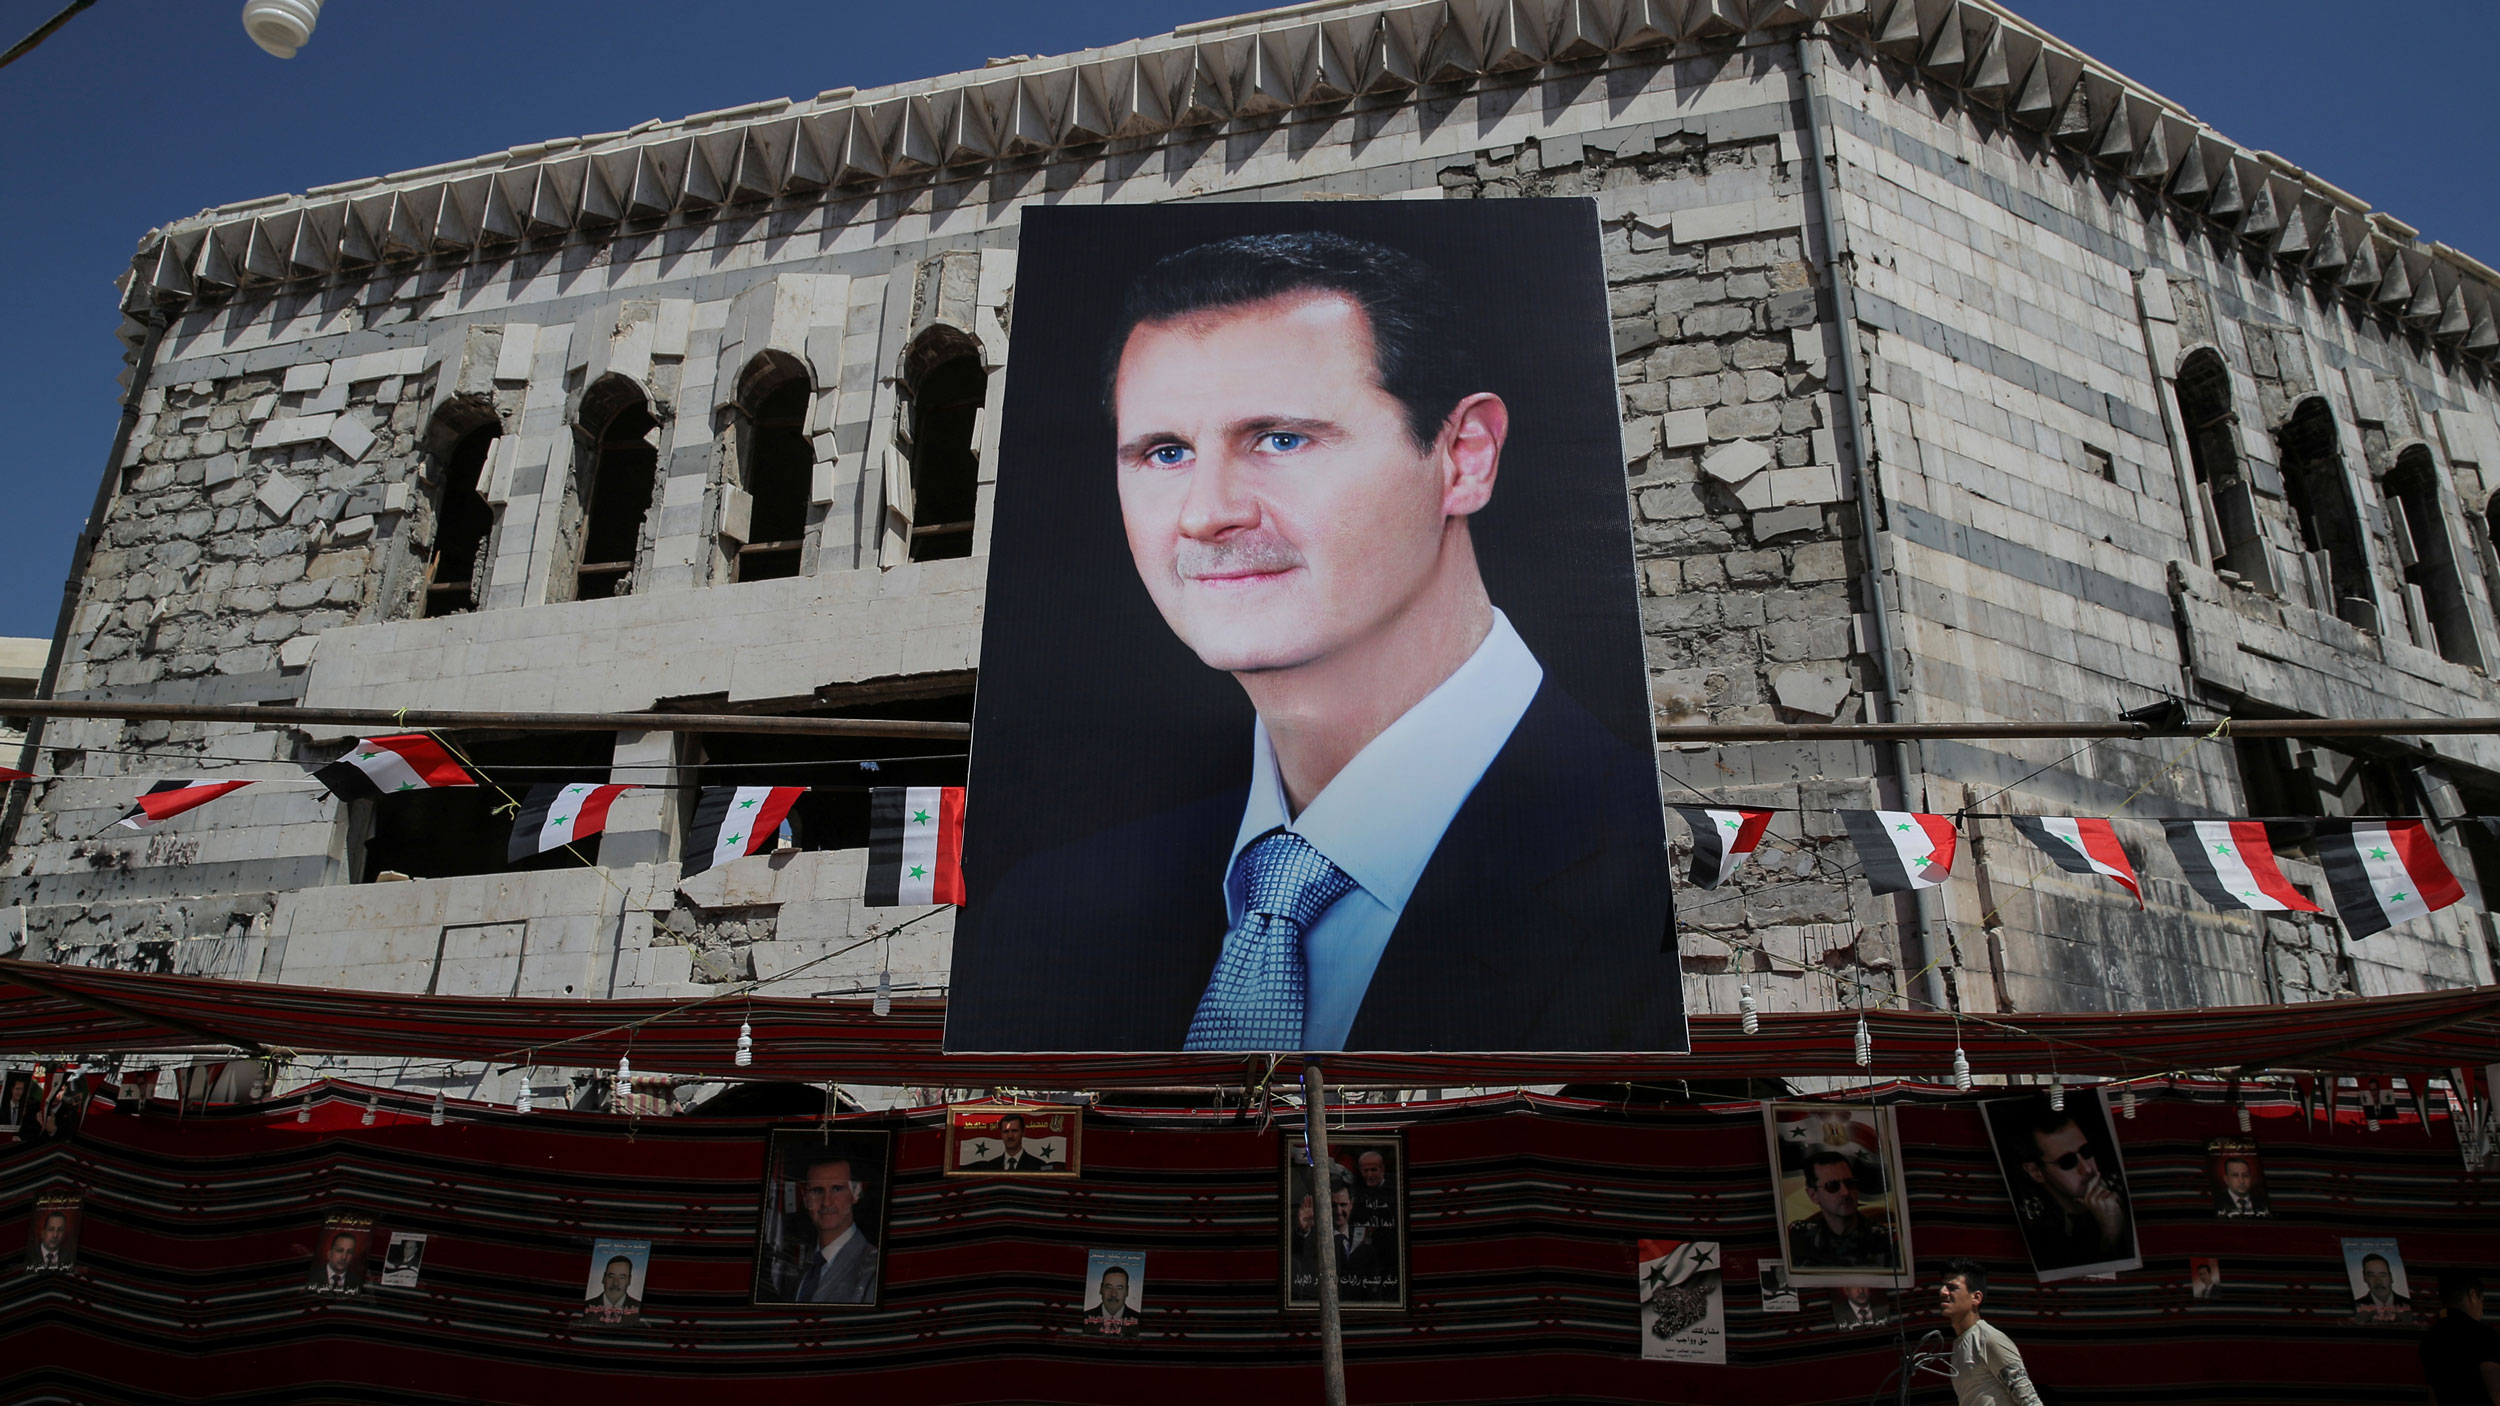 A large portrait photograph is show of Syrian president Bashar al-Assad with several Syrian flags flying behind it.